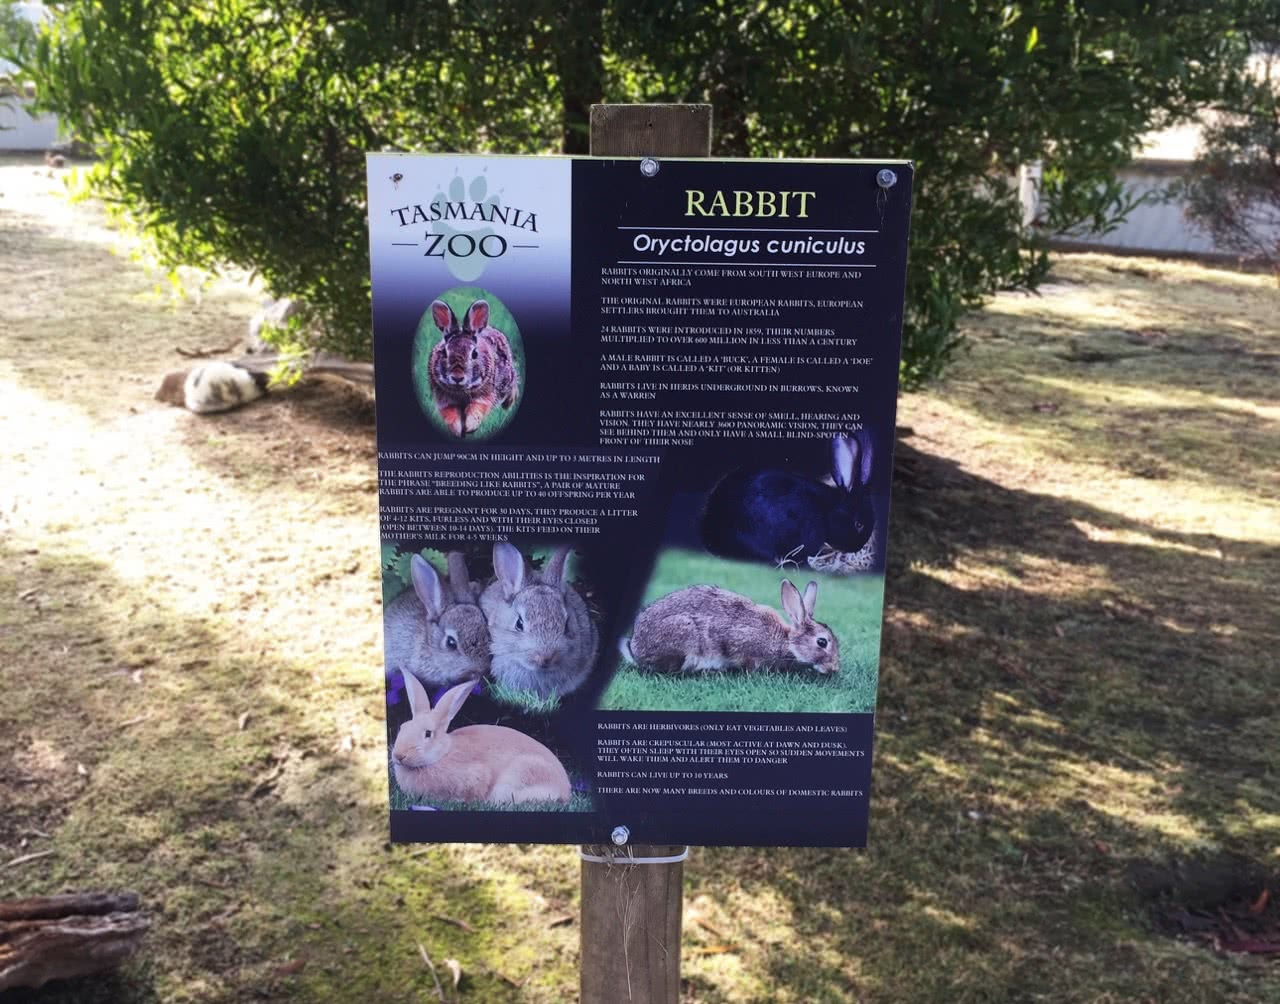 tasmania zoo, rabbit, sign